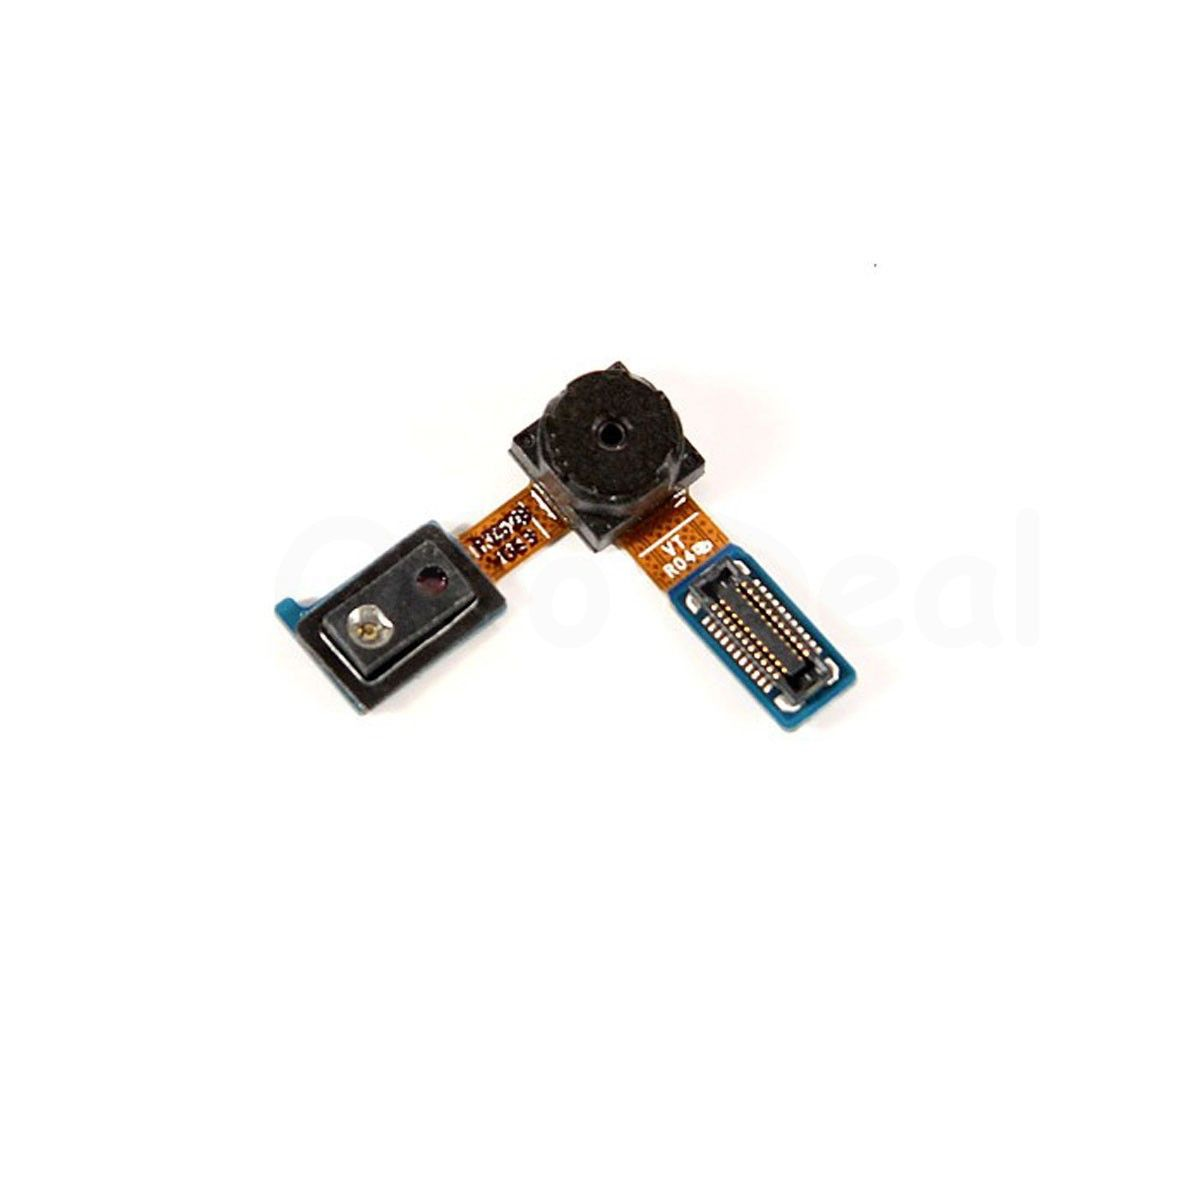 Front Camera Replacement for Samsung Galaxy S3 III http://www.ogodeal.com/front-camera-replacement-for-samsung-galaxy-s3-iii.html?___SID=U